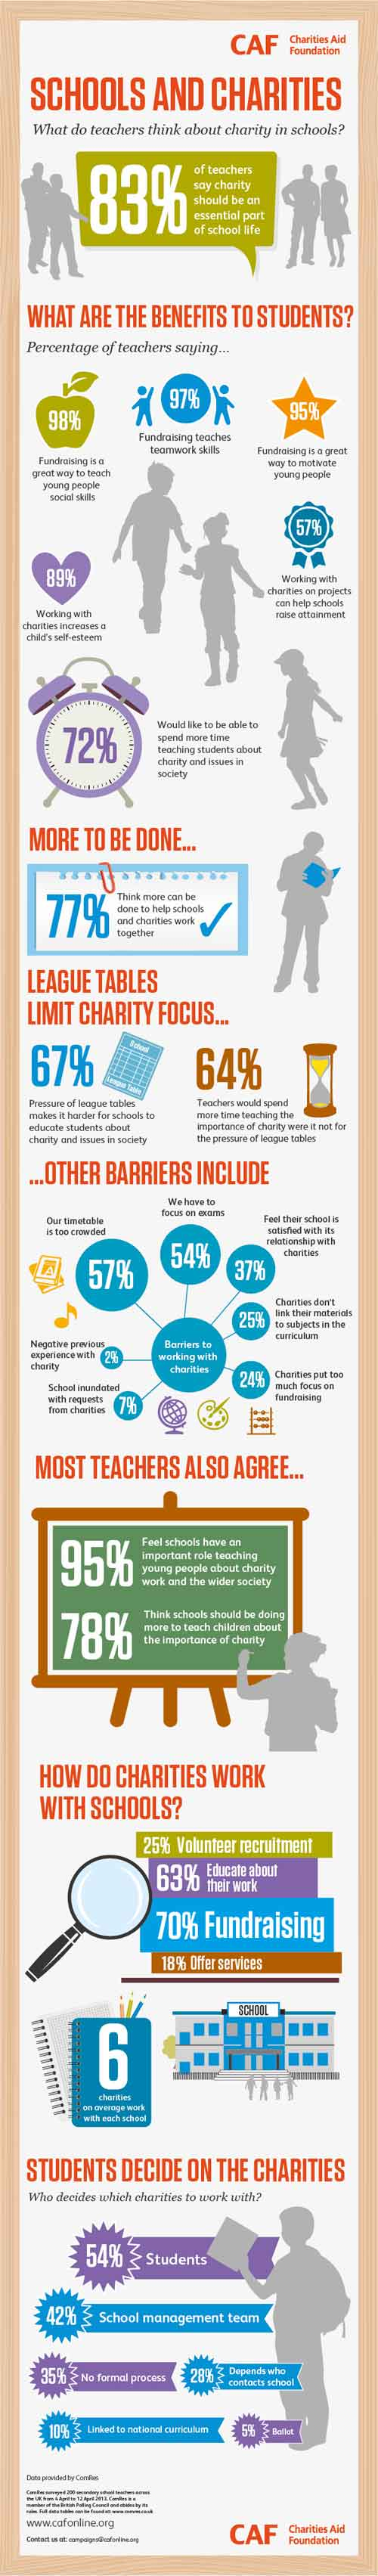 Schools and charities: what do teachers think about charity in schools?